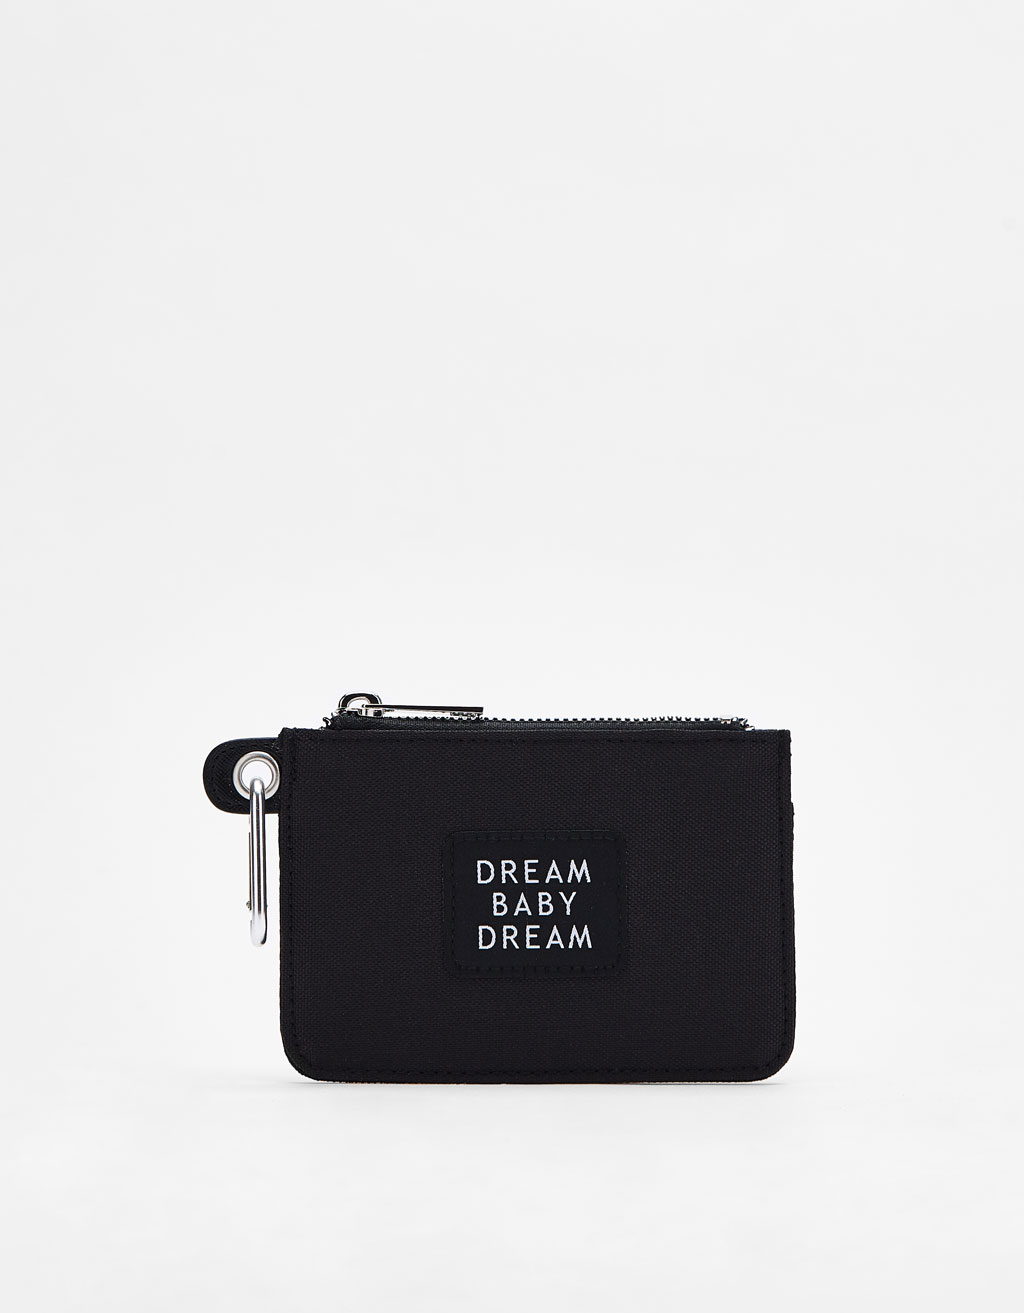 Key ring purse with slogan